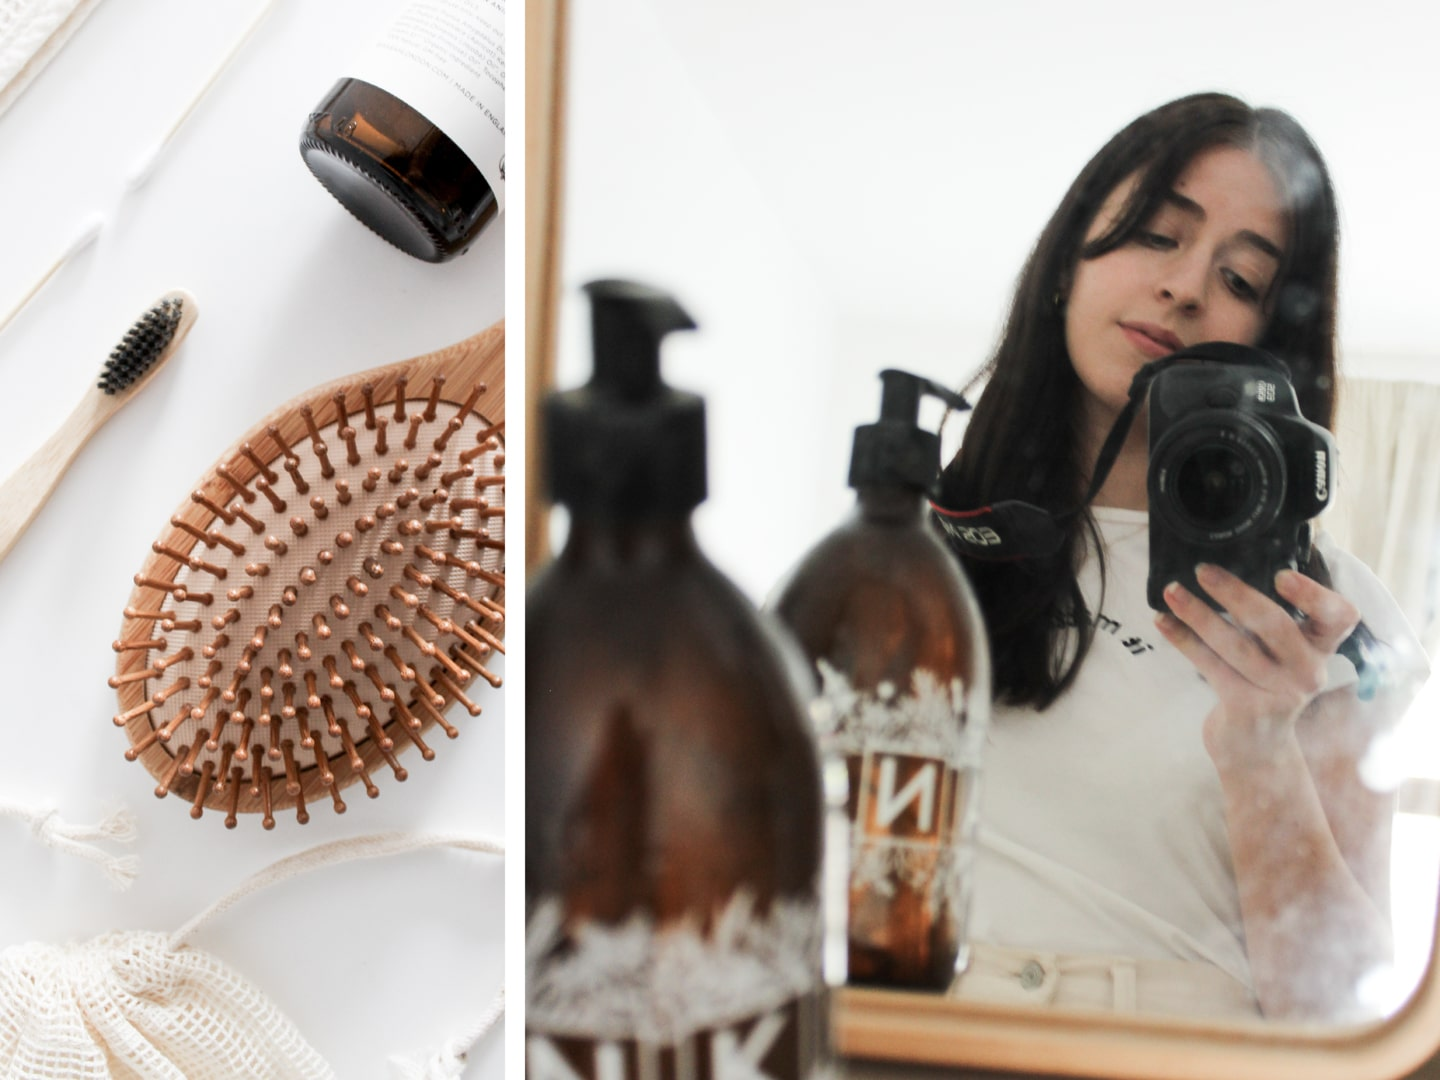 Sustainable Beauty: 5 Credentials I Look For | Curiously Conscious